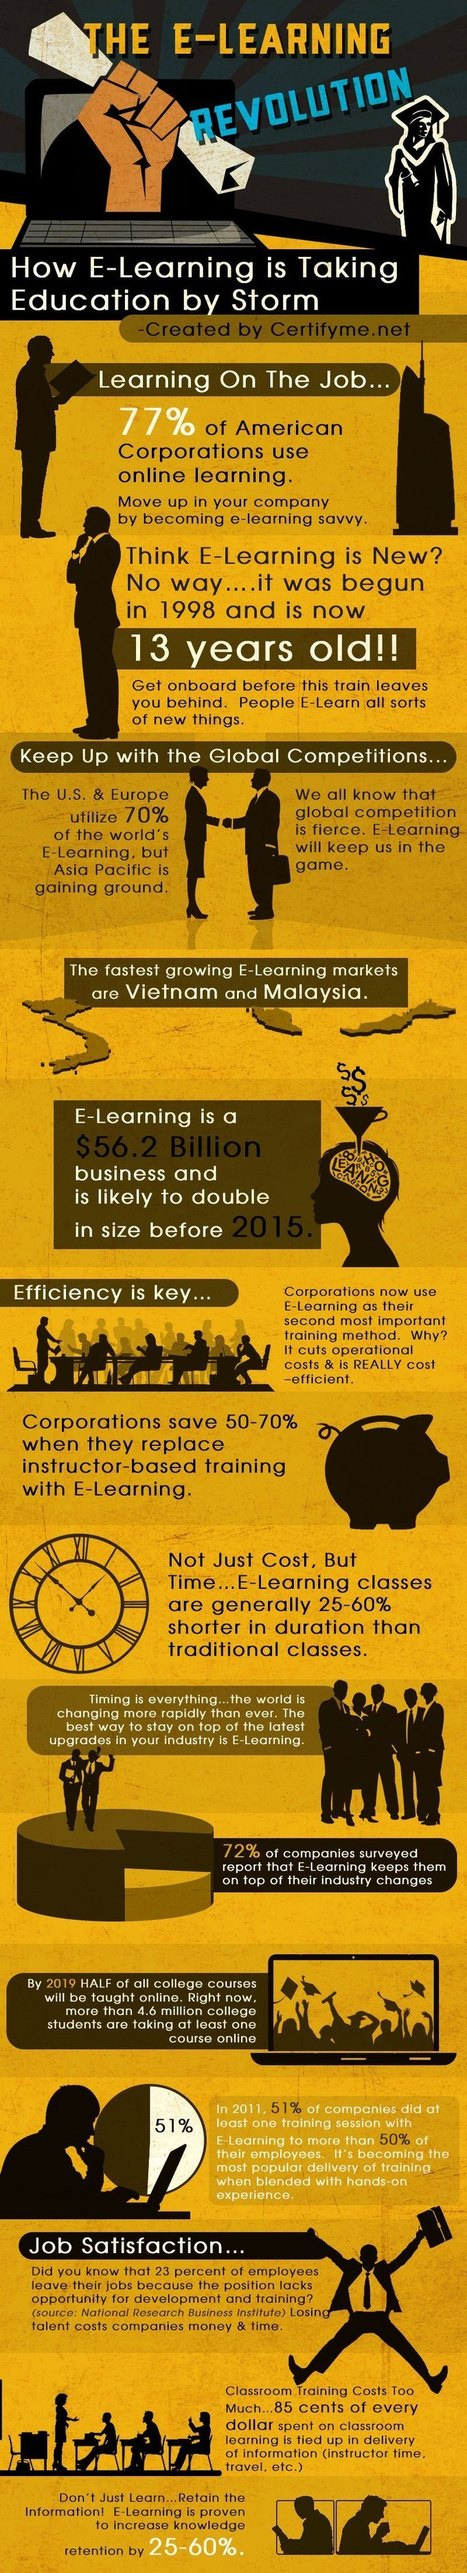 Important eLearning Statistics for 2013 | Online trainers academy | Scoop.it